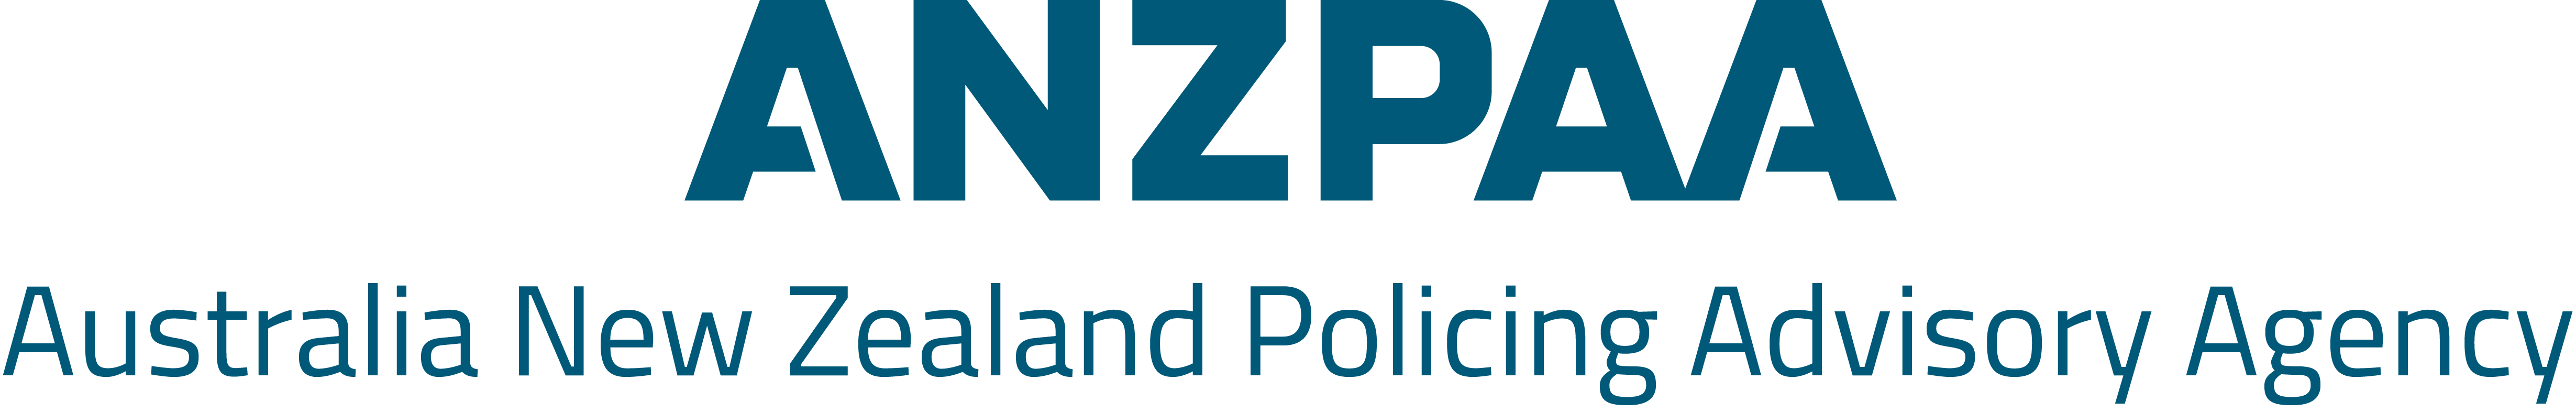 ANZPAA: Australia New Zealand Policing Advisory Agency